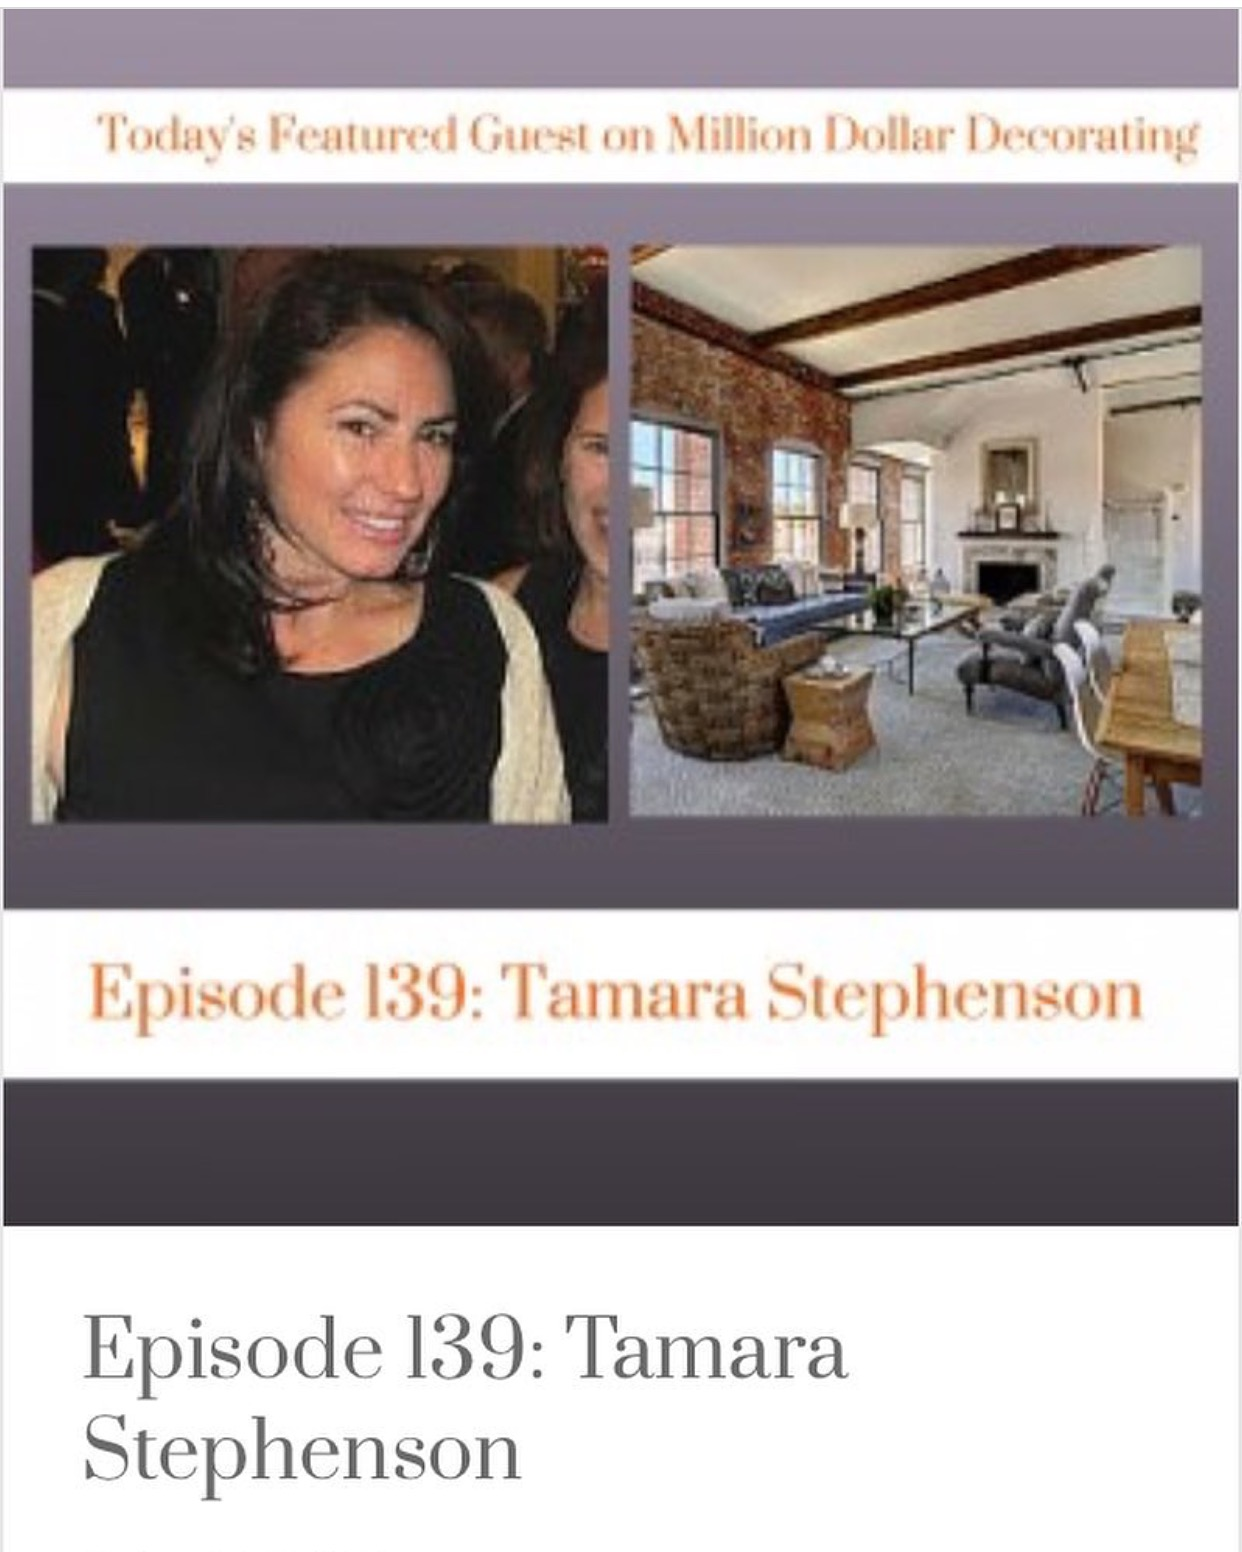 Tamara's podcast interview about design